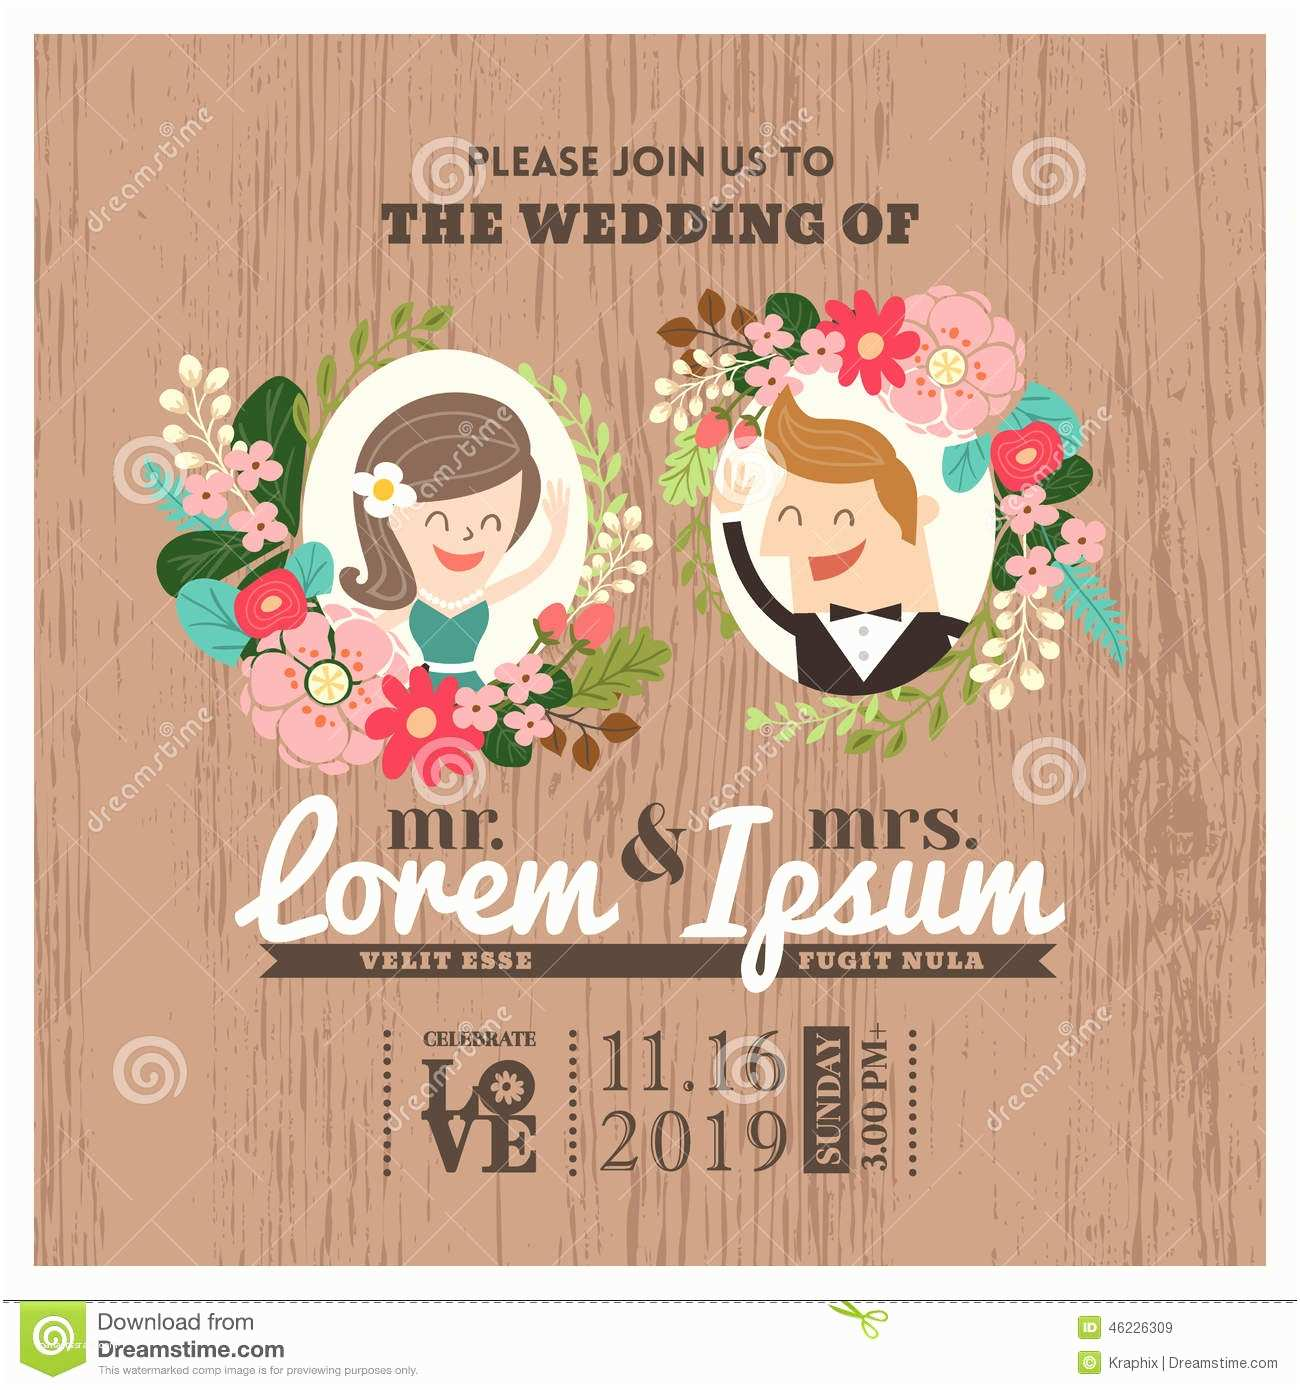 Cartoon Wedding Invitations Online Wedding Invitation Card with Cute Groom and Bride Cartoon